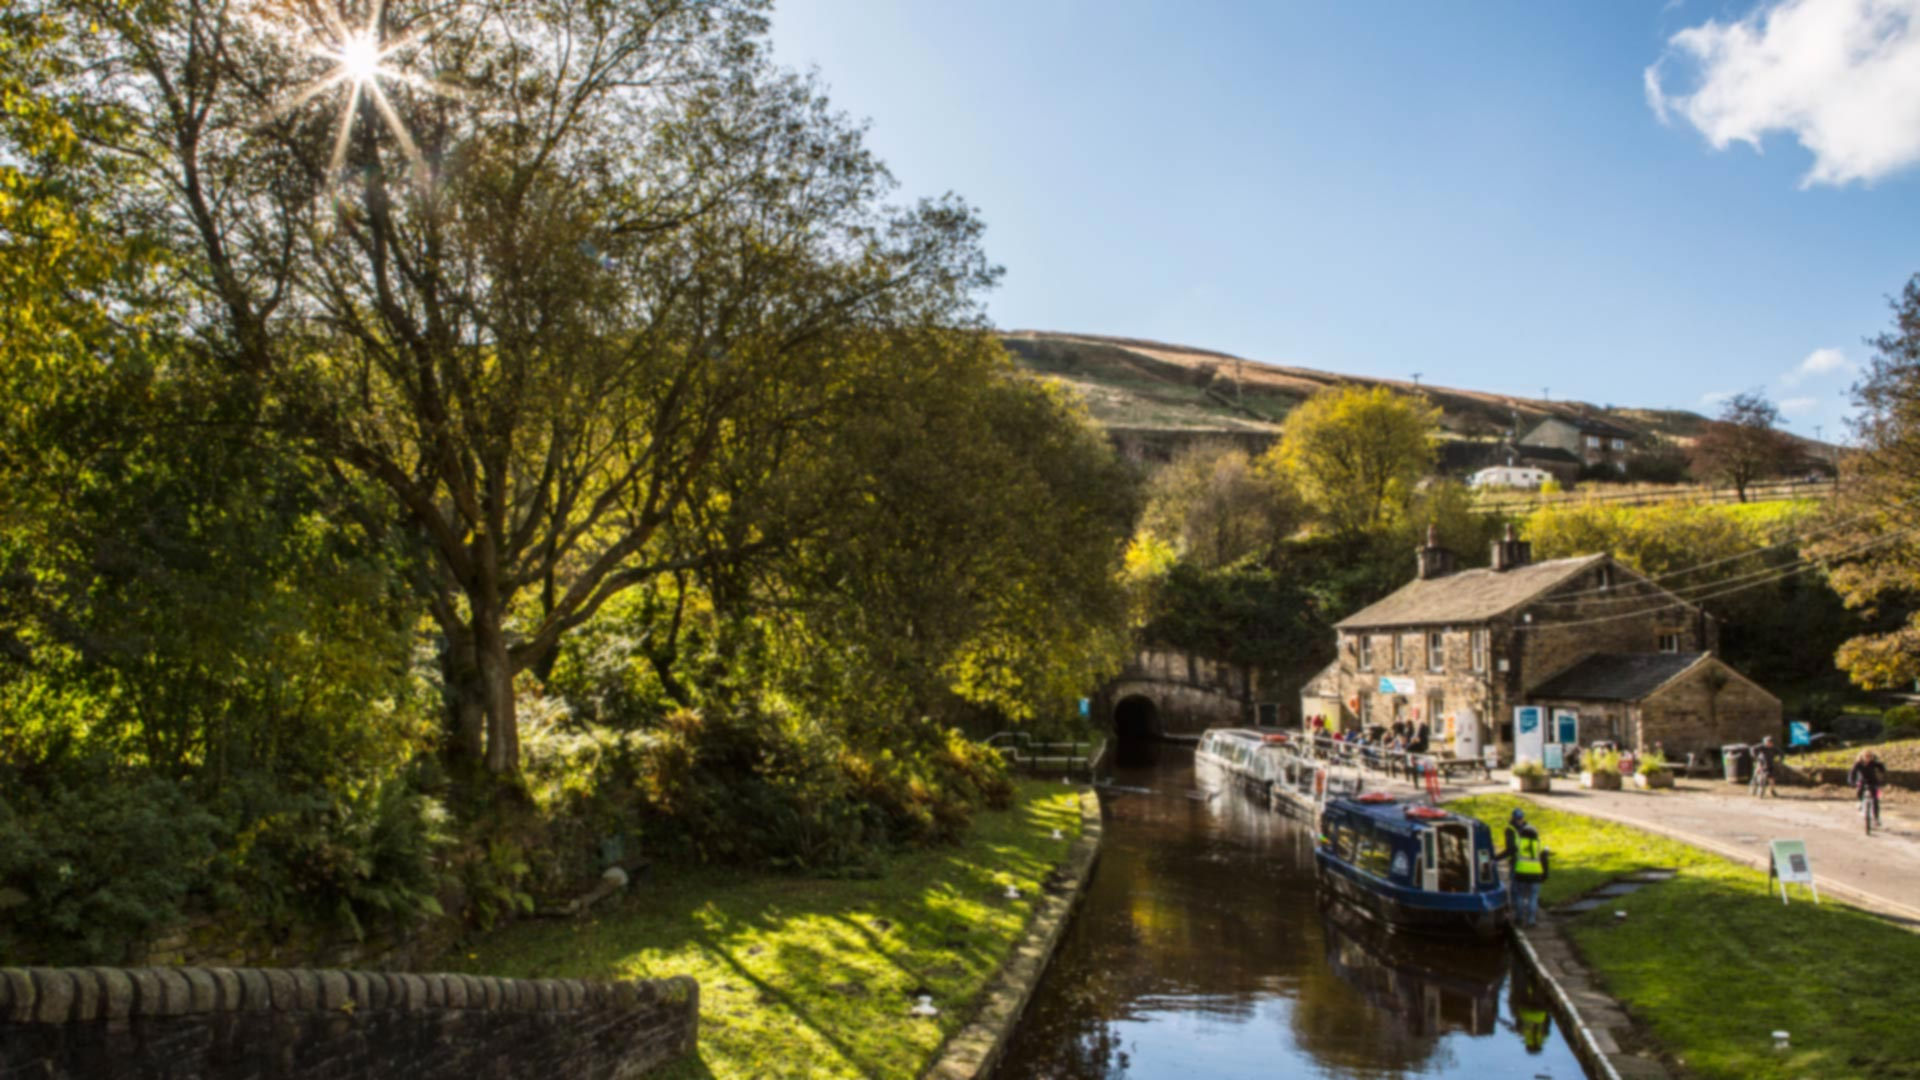 A view over the canal of the tunnel end at Standedge, Marsden